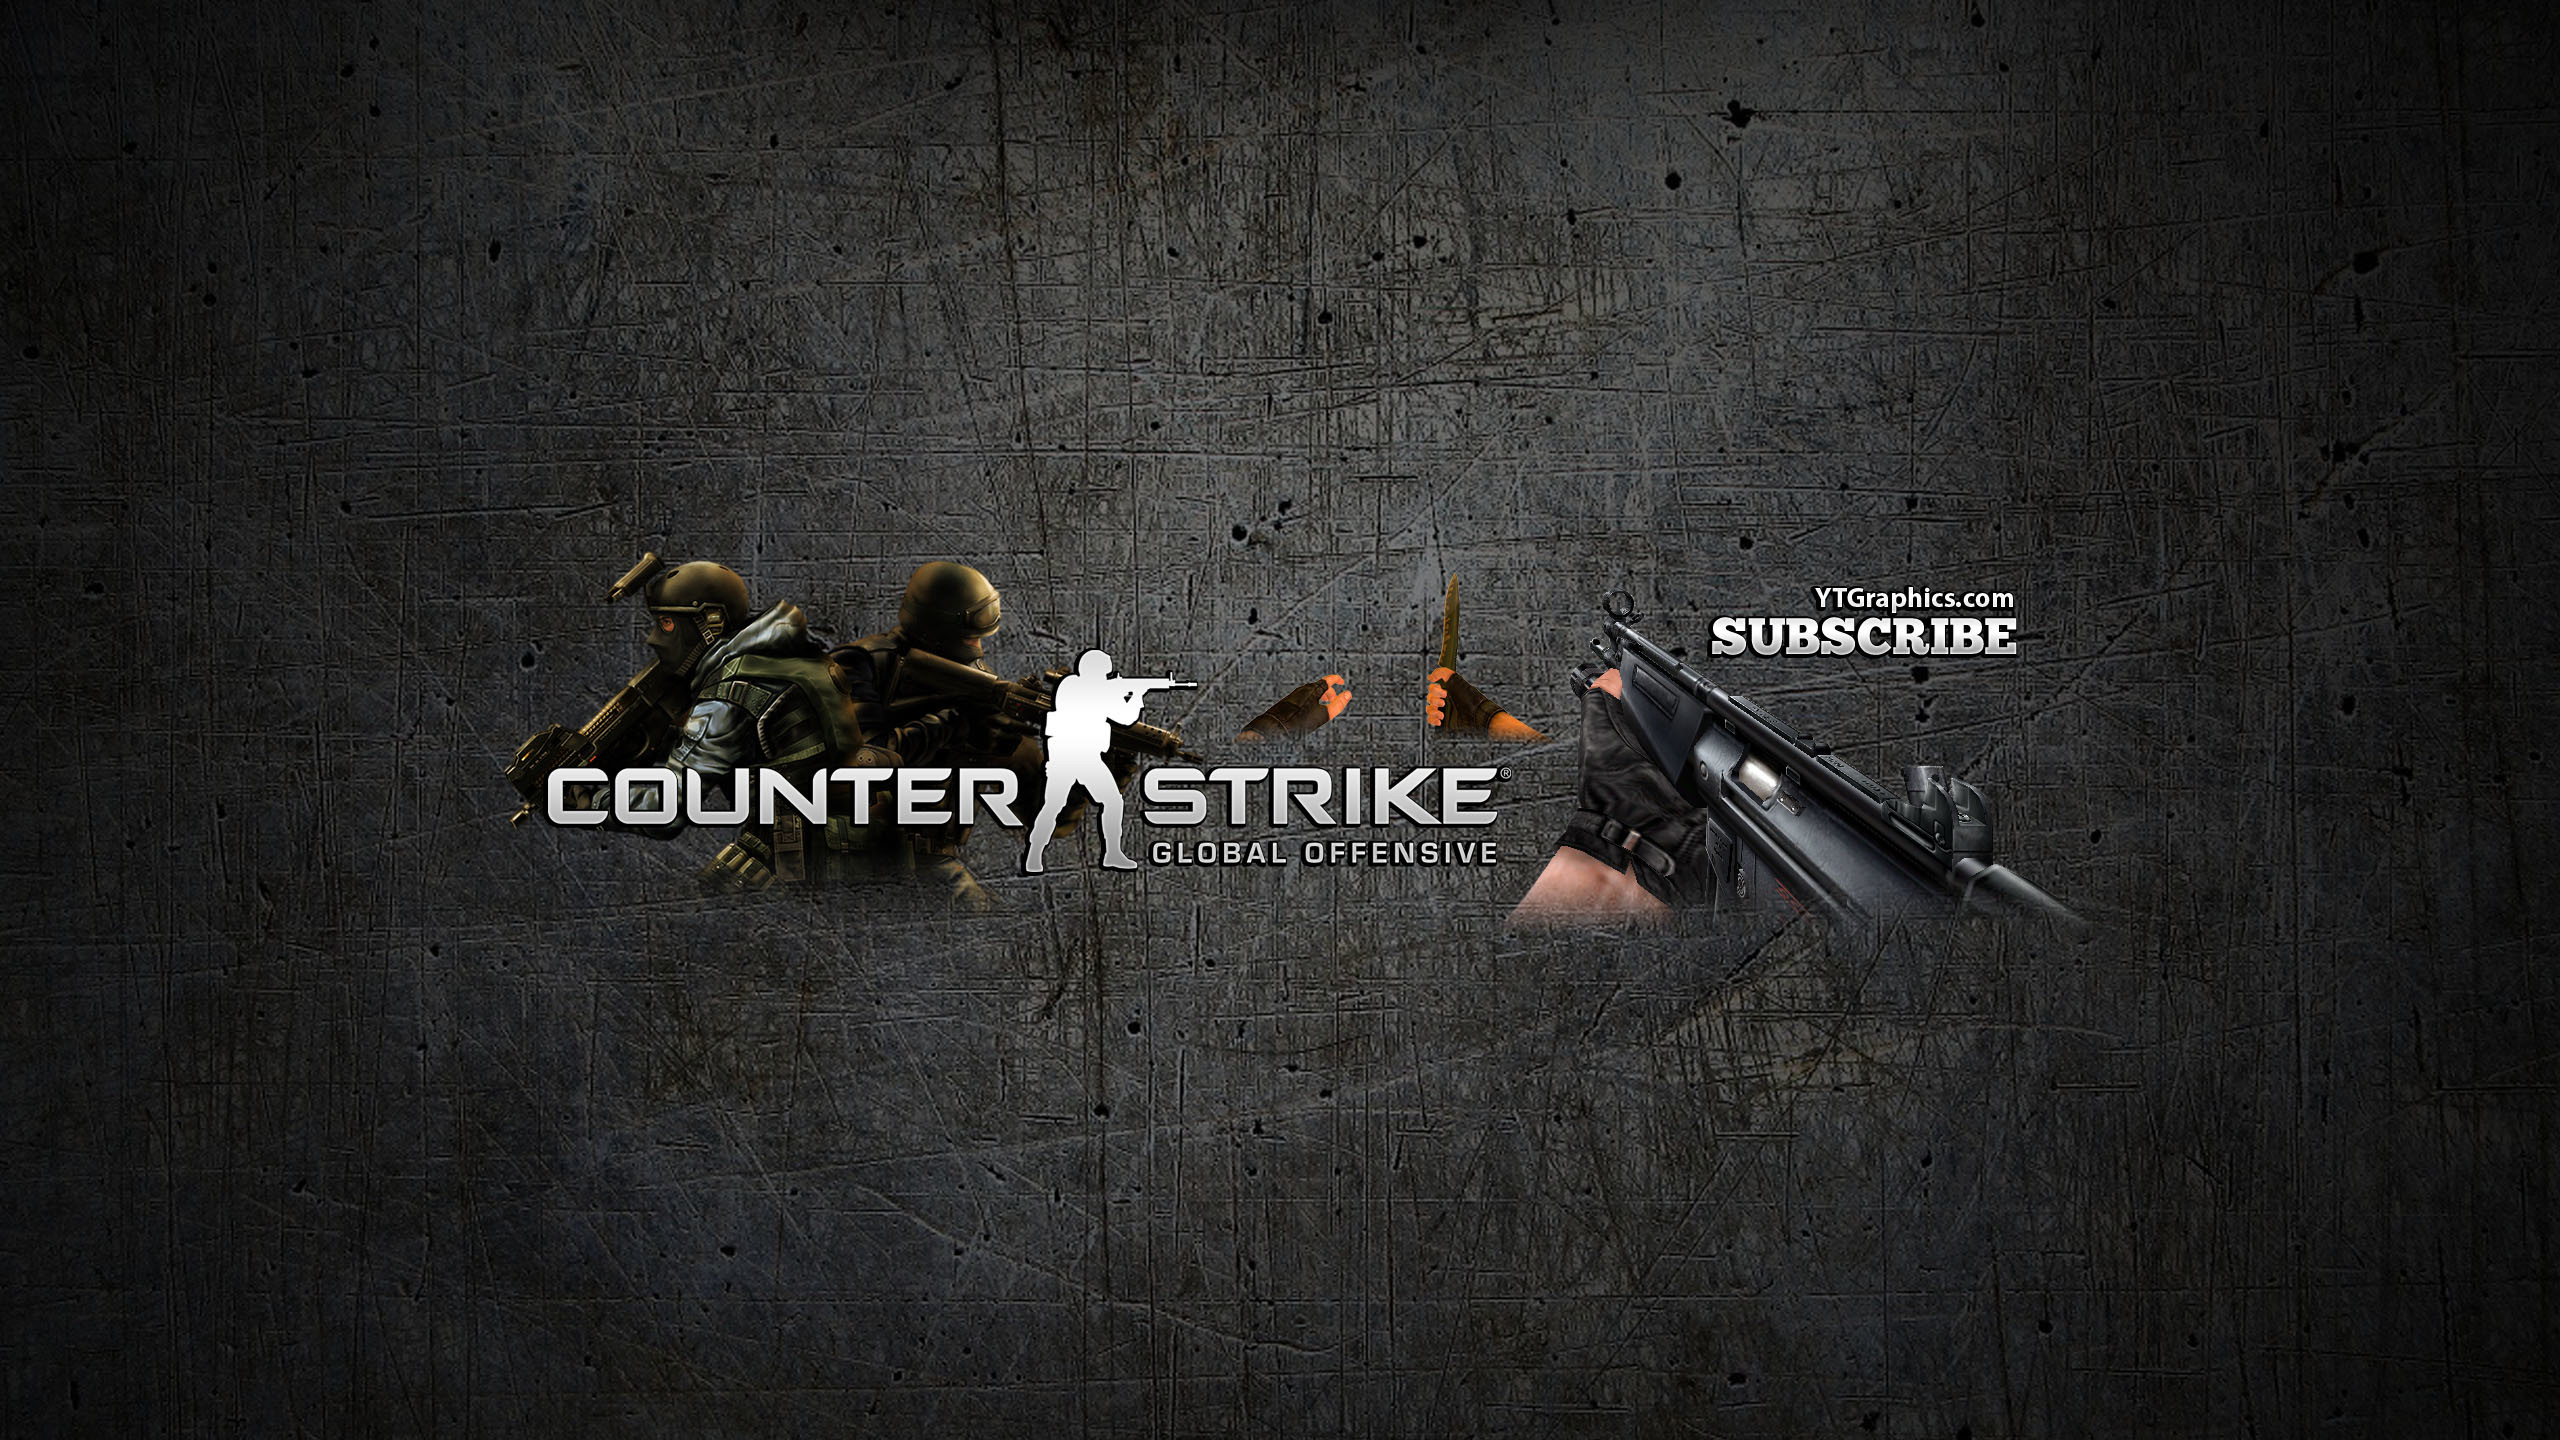 2560x1440 Cs Go Youtube Banner wallpaper - 1407821